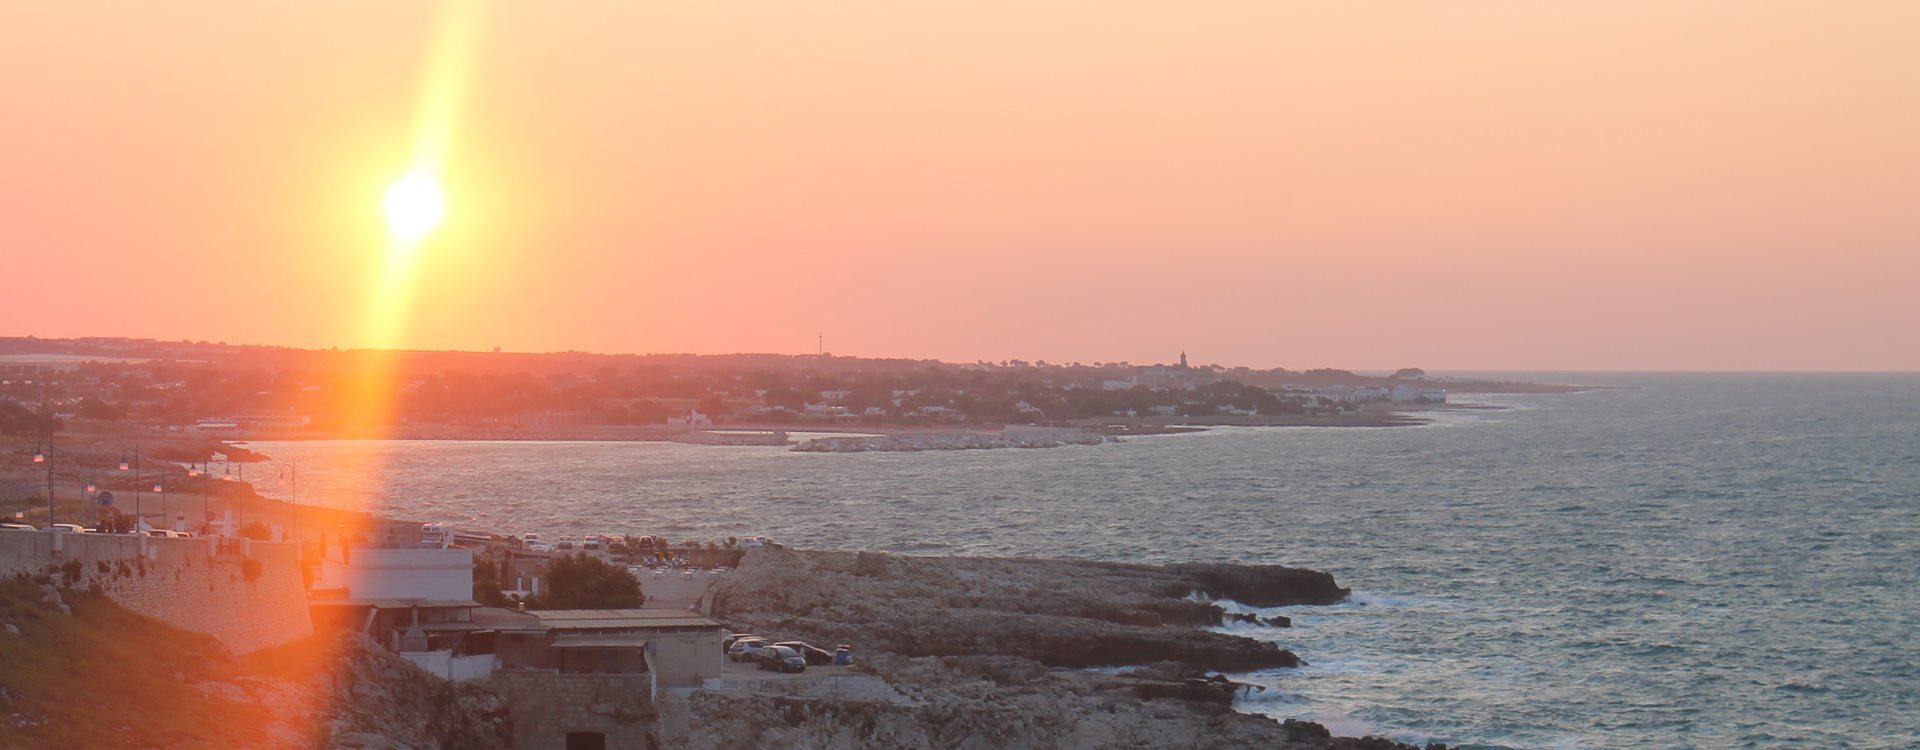 The sunset in Polignano a Mare